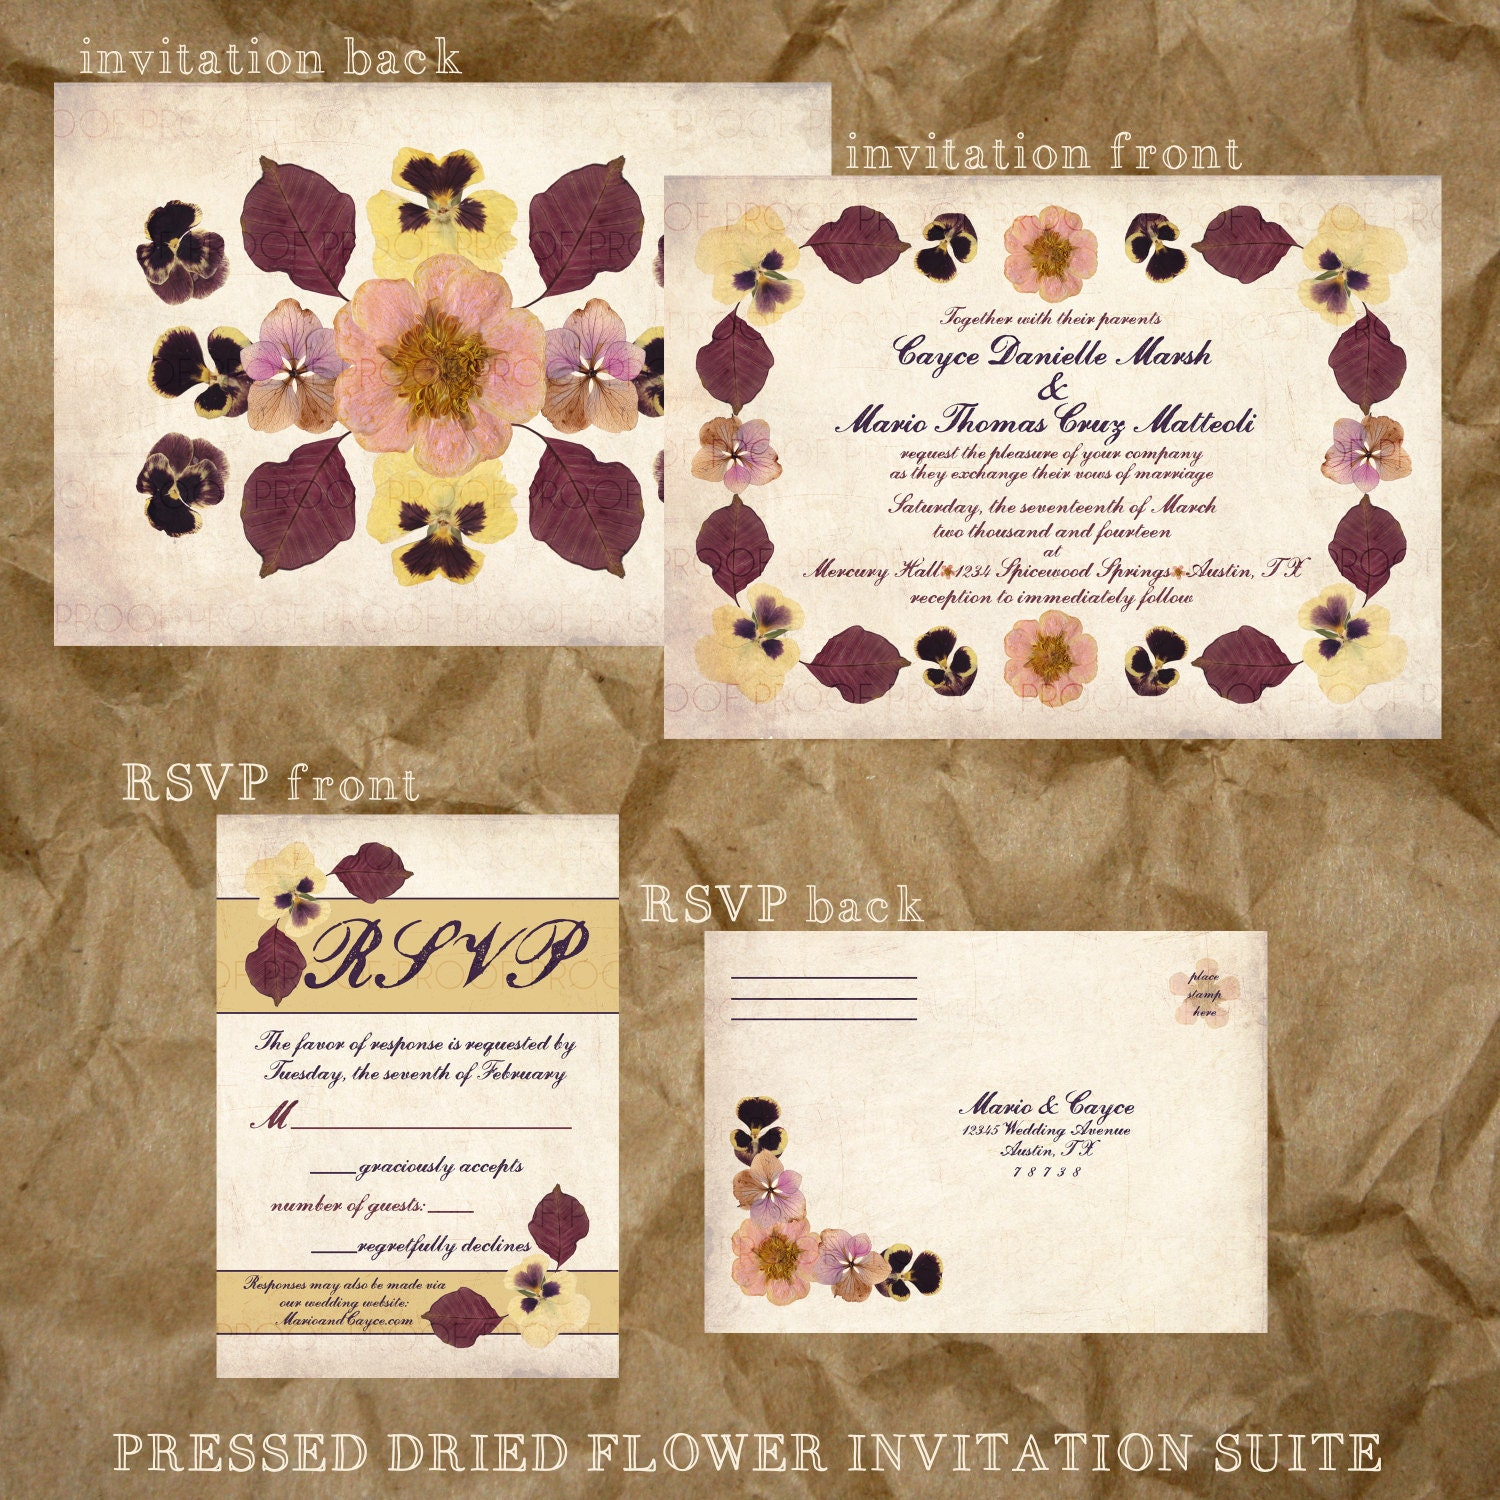 pressed flower wedding invitation suite fall colors. Black Bedroom Furniture Sets. Home Design Ideas